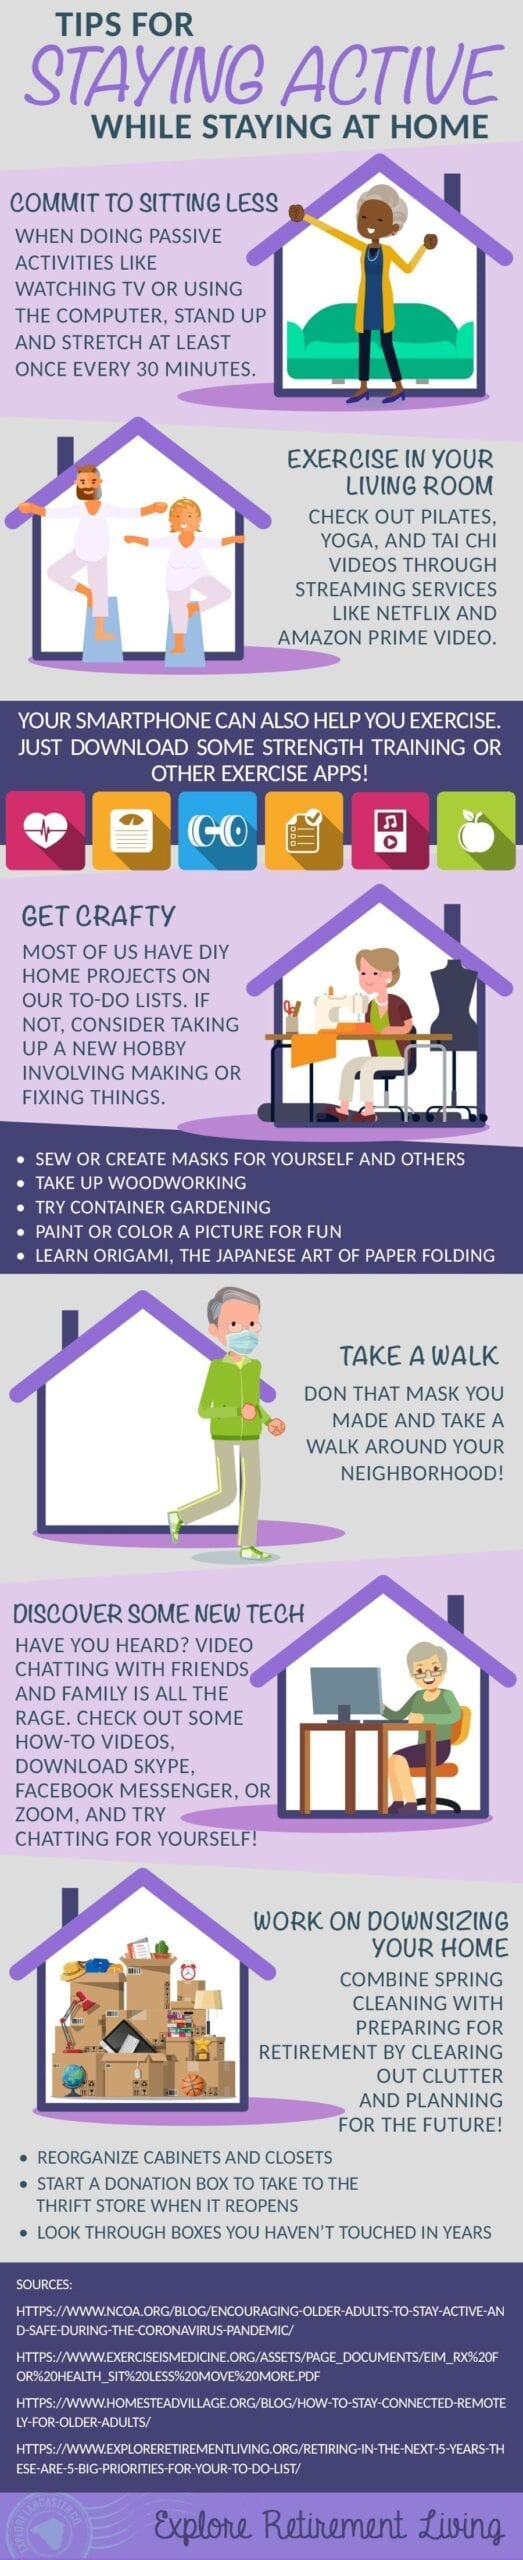 Infographic discussing tips for staying active at home as an older adult